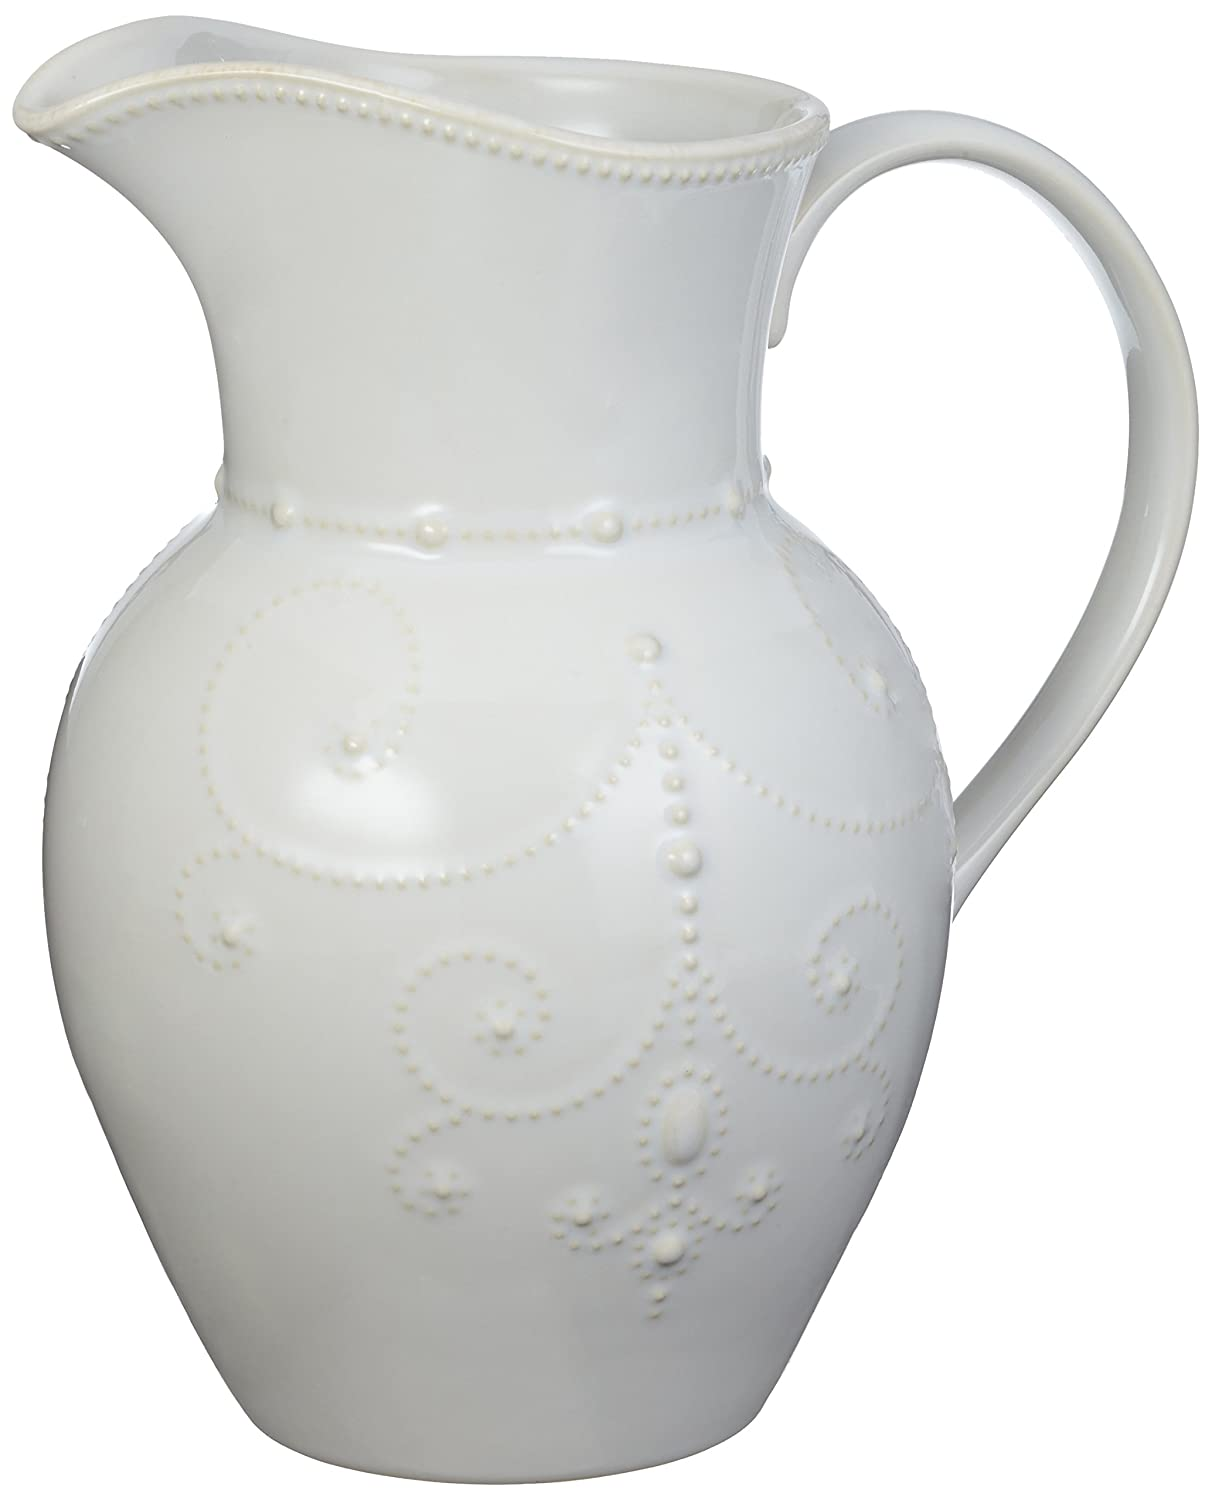 Christmas Tablescape Décor - Lenox Large White French Perle Pitcher